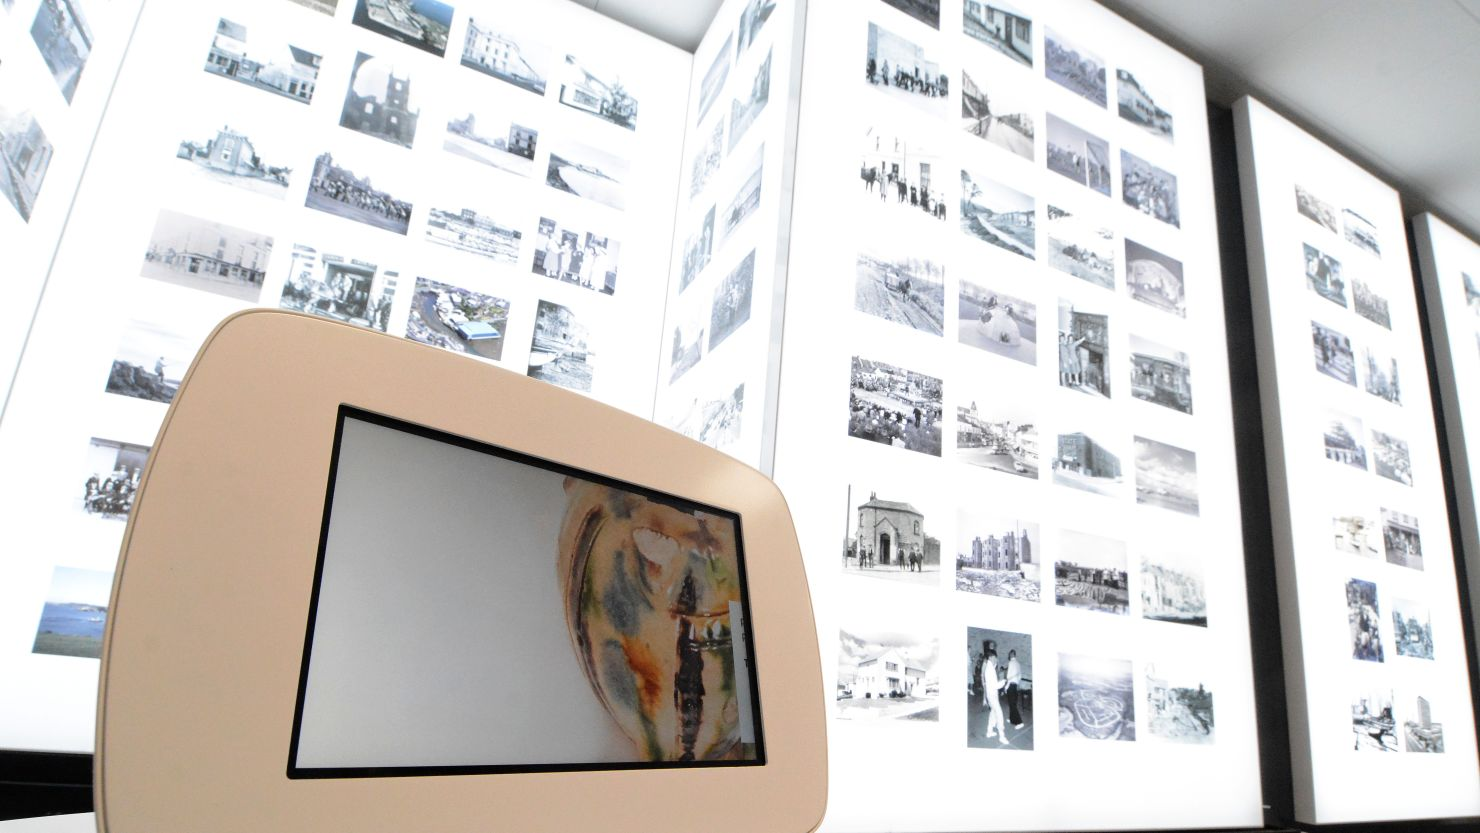 An image of the 'Photo Album' gallery at The Box, Plymouth with images on giant lightboards